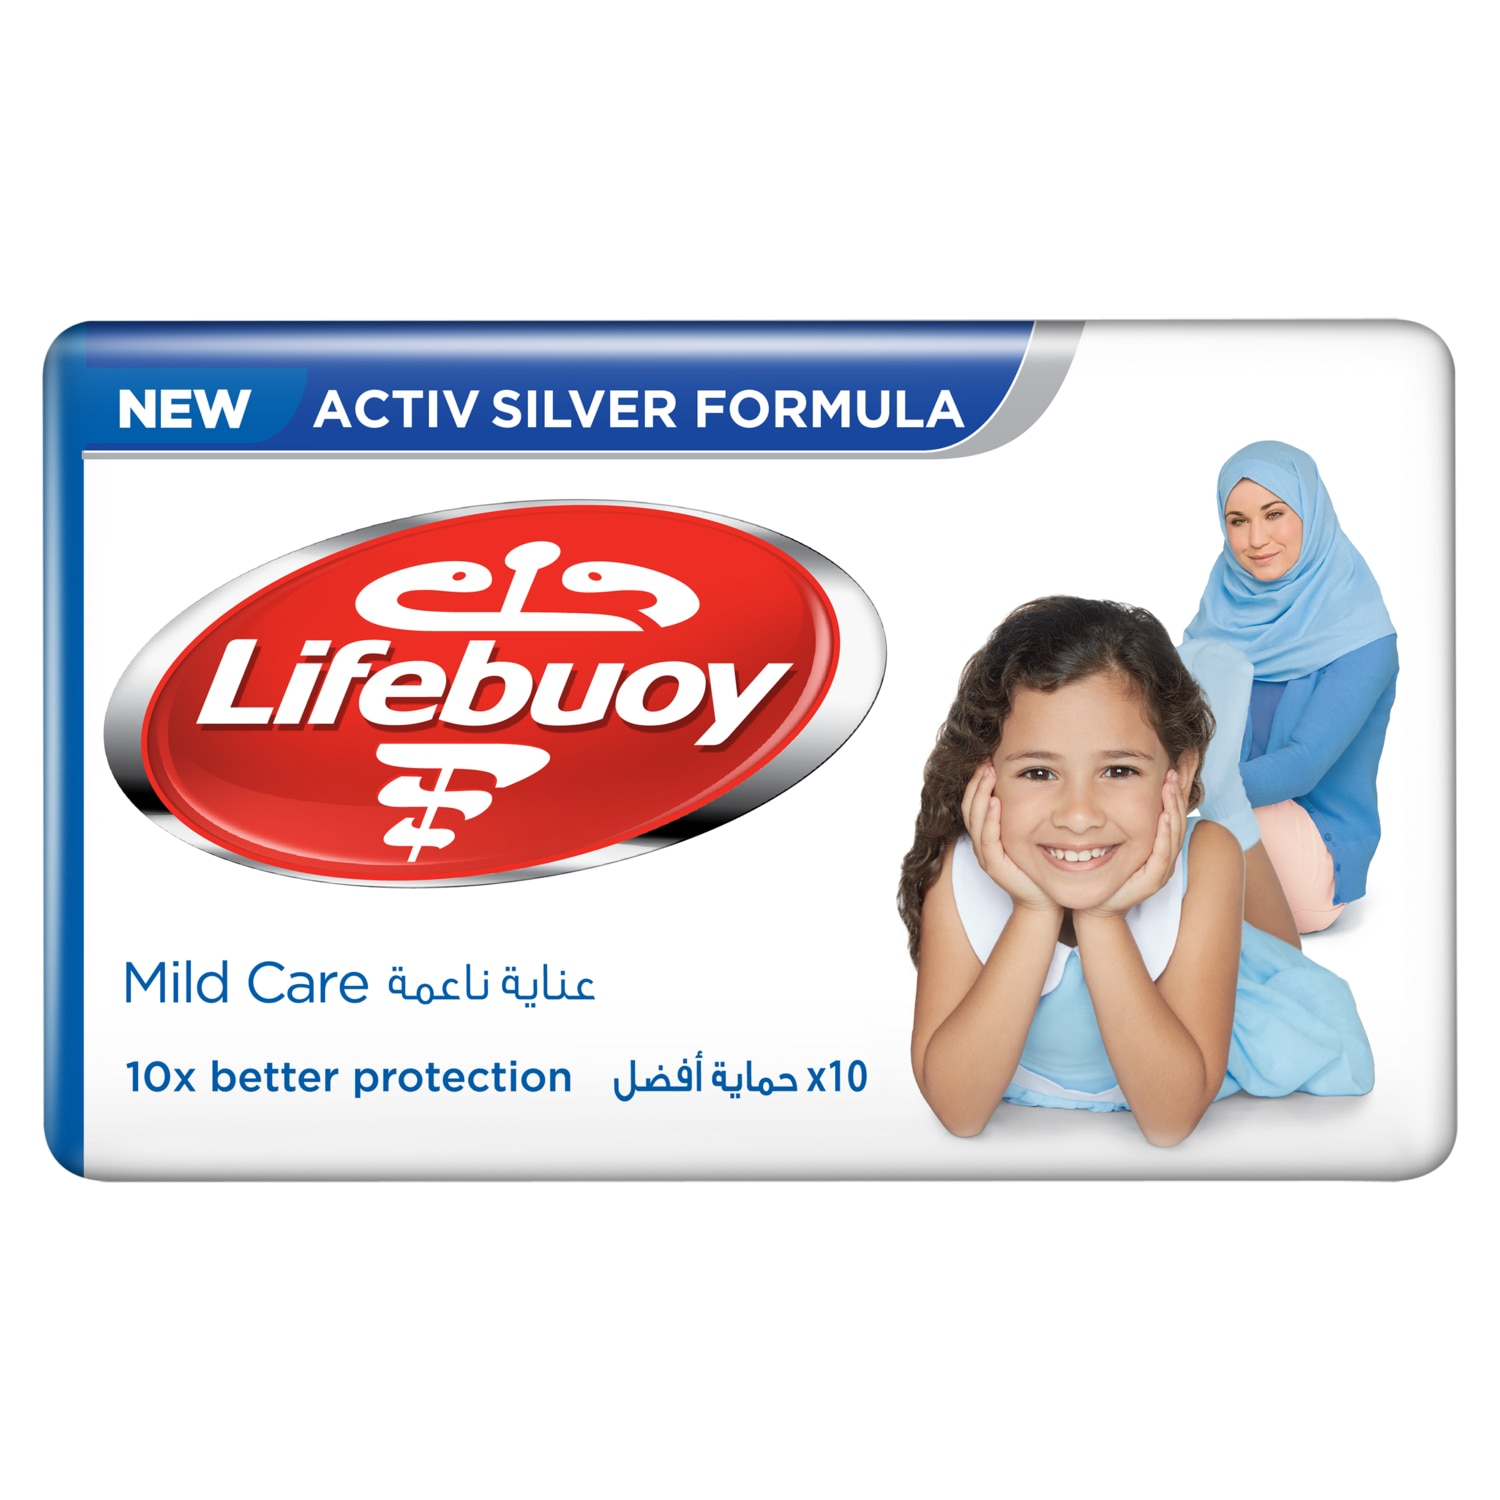 Lifebuoy Mild Care Soap Wrapper 125g Front